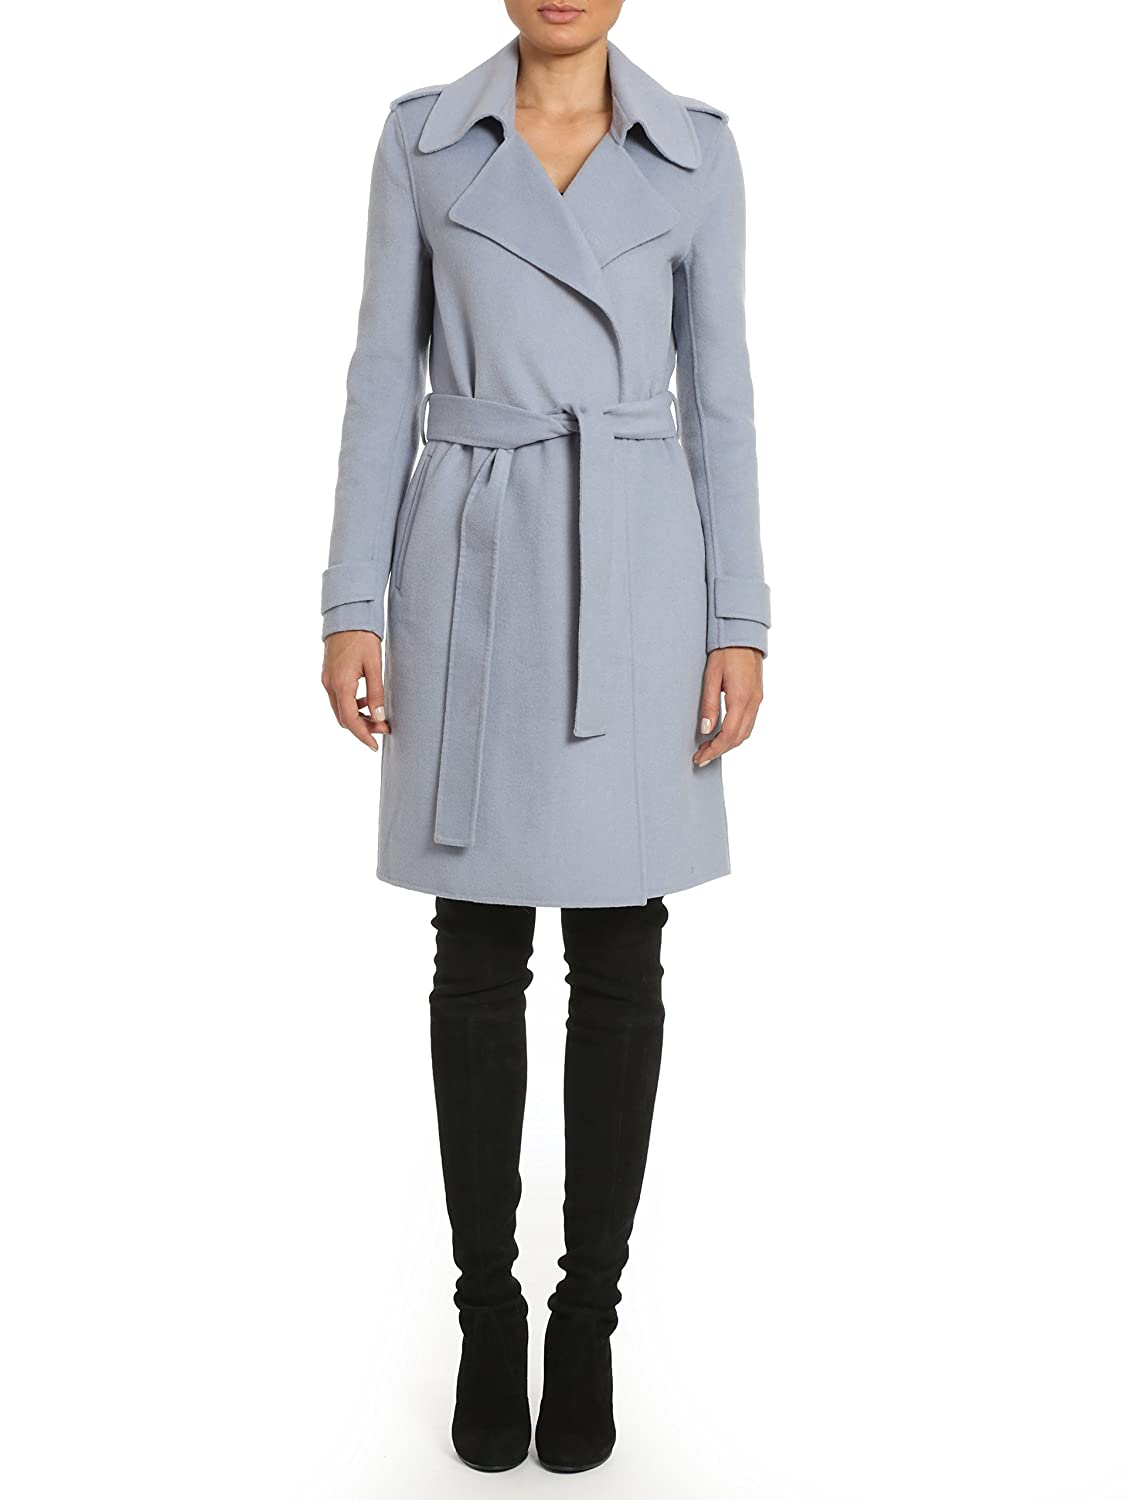 214899b1aede Amazon.com: Badgley Mischka Women's Double Face Wool Wrap Trench Coat:  Clothing